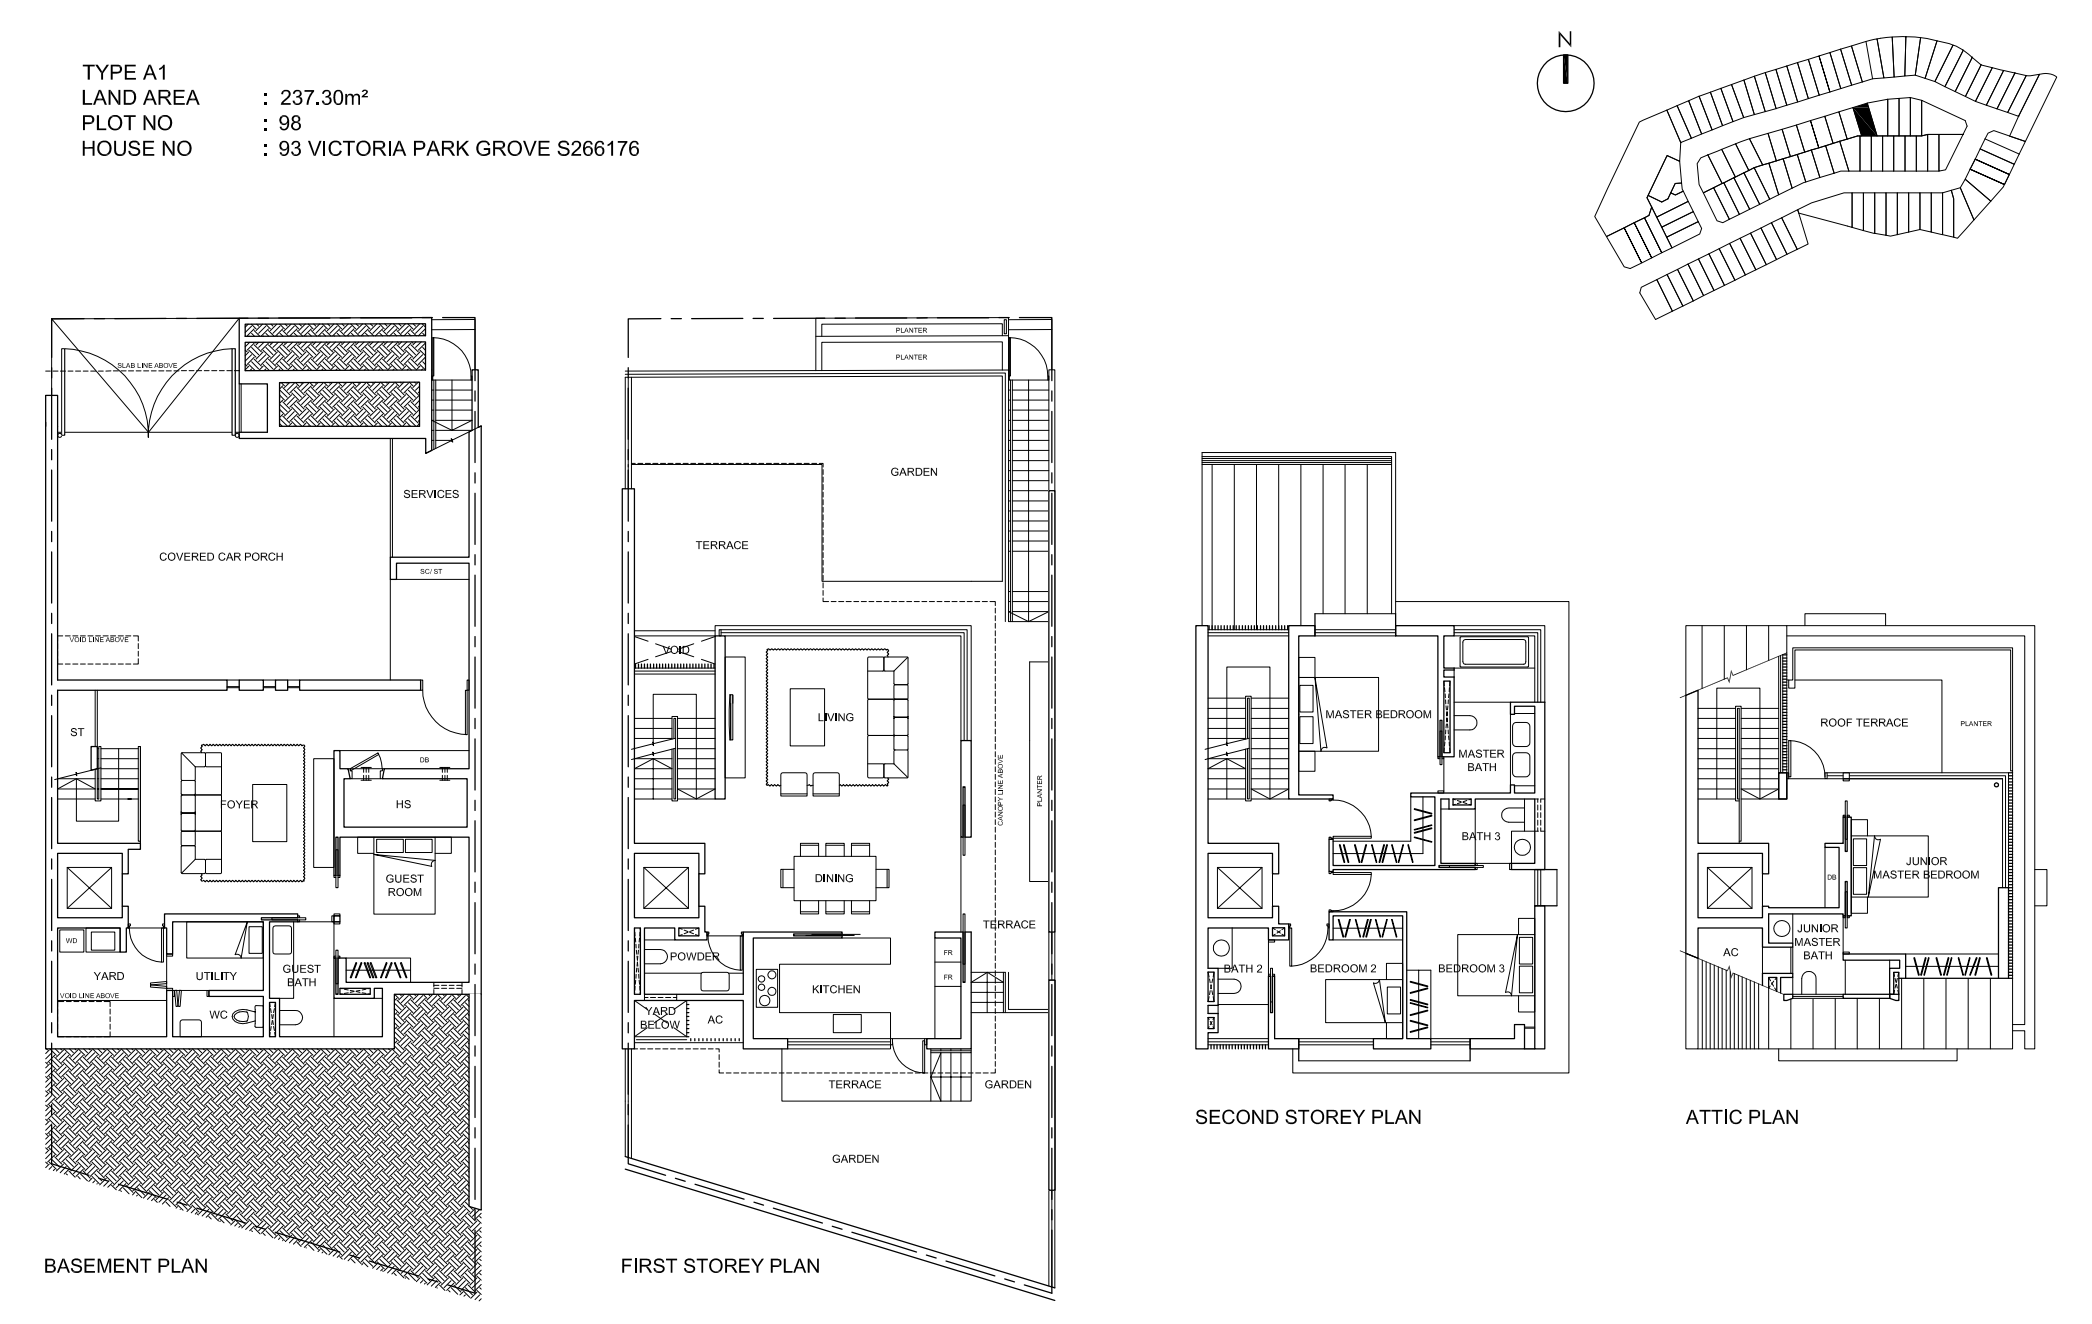 Victoria Park Villas Floor Plan Type A1